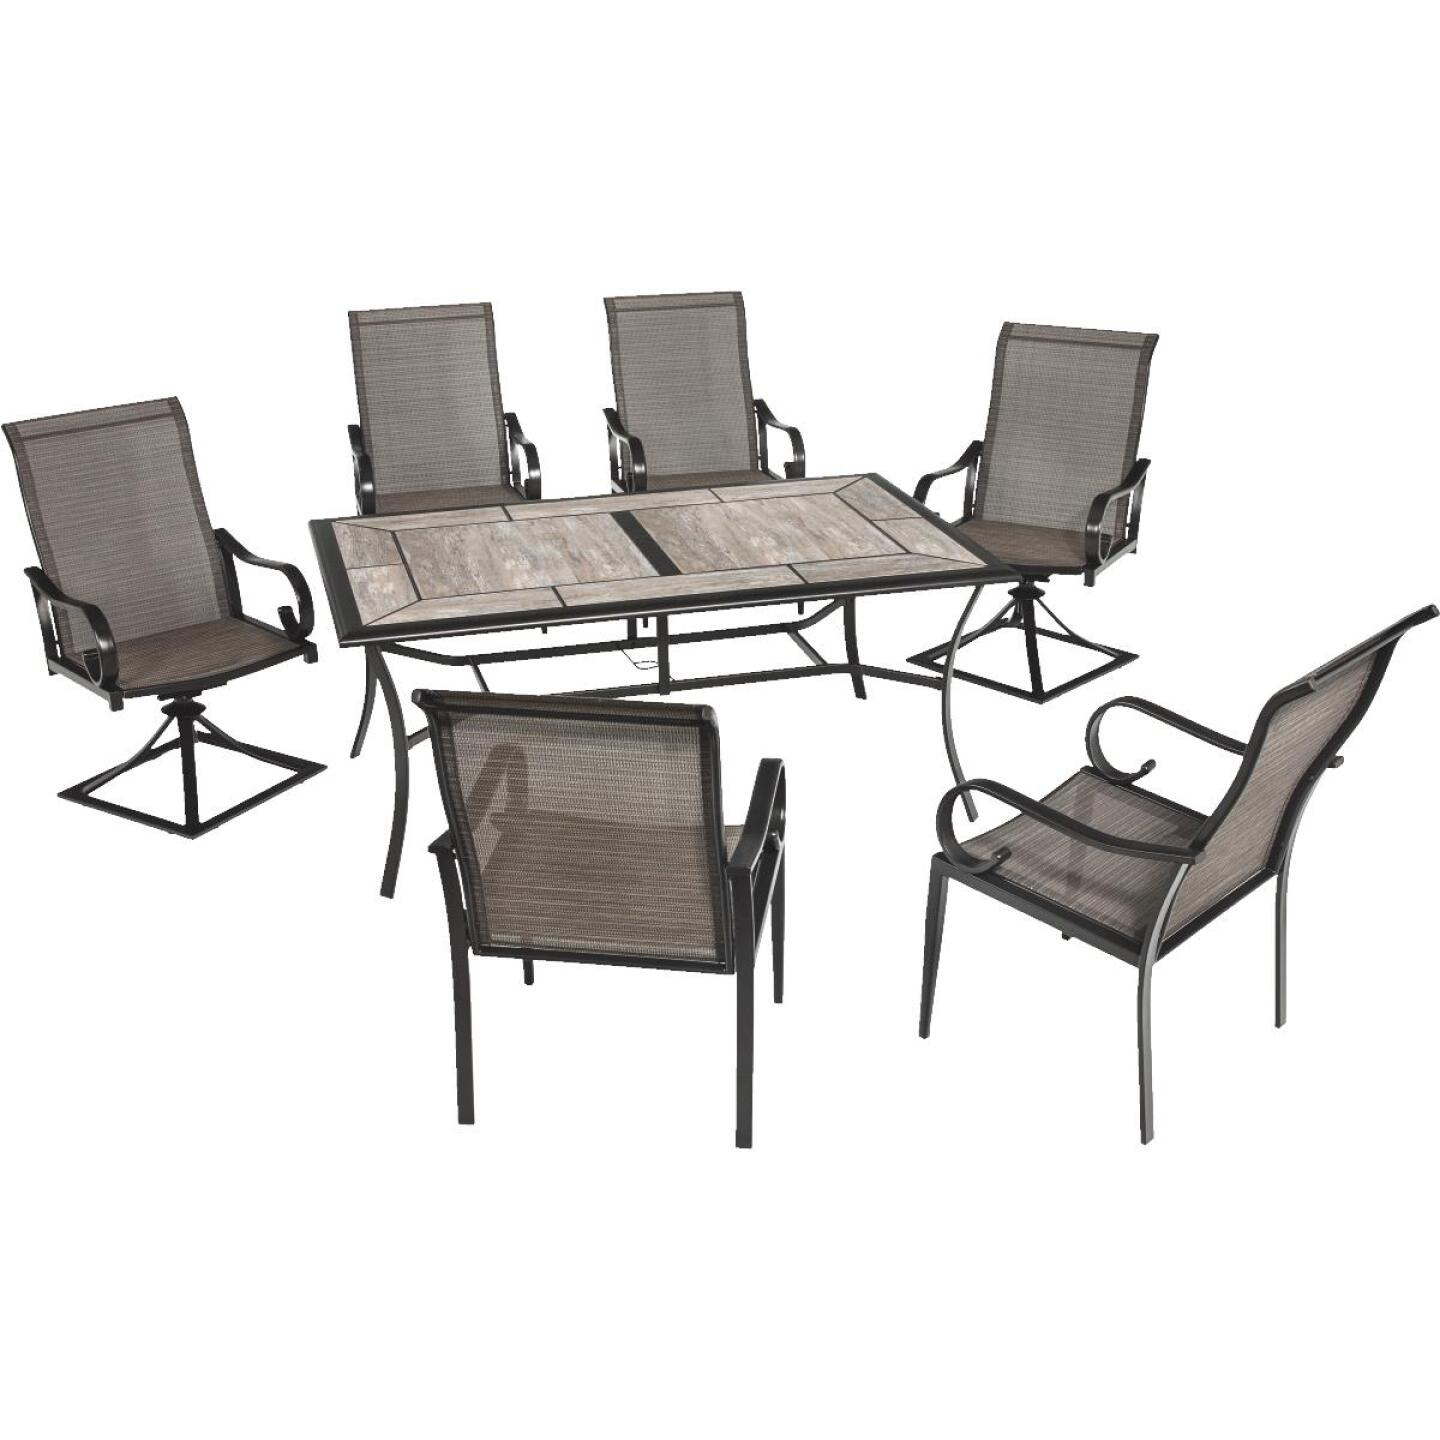 Outdoor Expressions Berkshire 7-Piece Dining Set Image 311